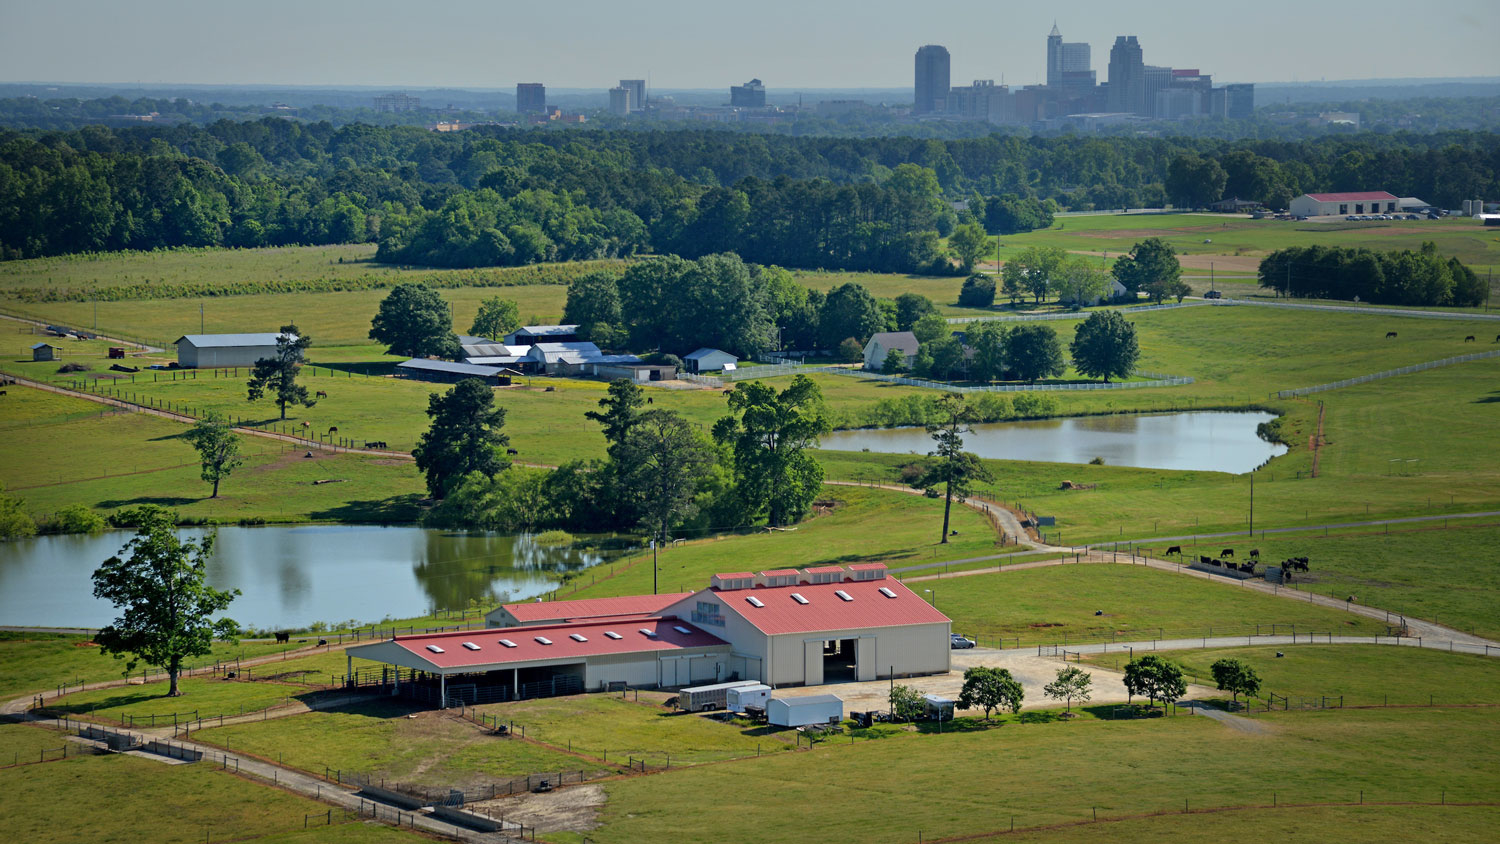 aerial view of farm with the Raleigh skyline in the background